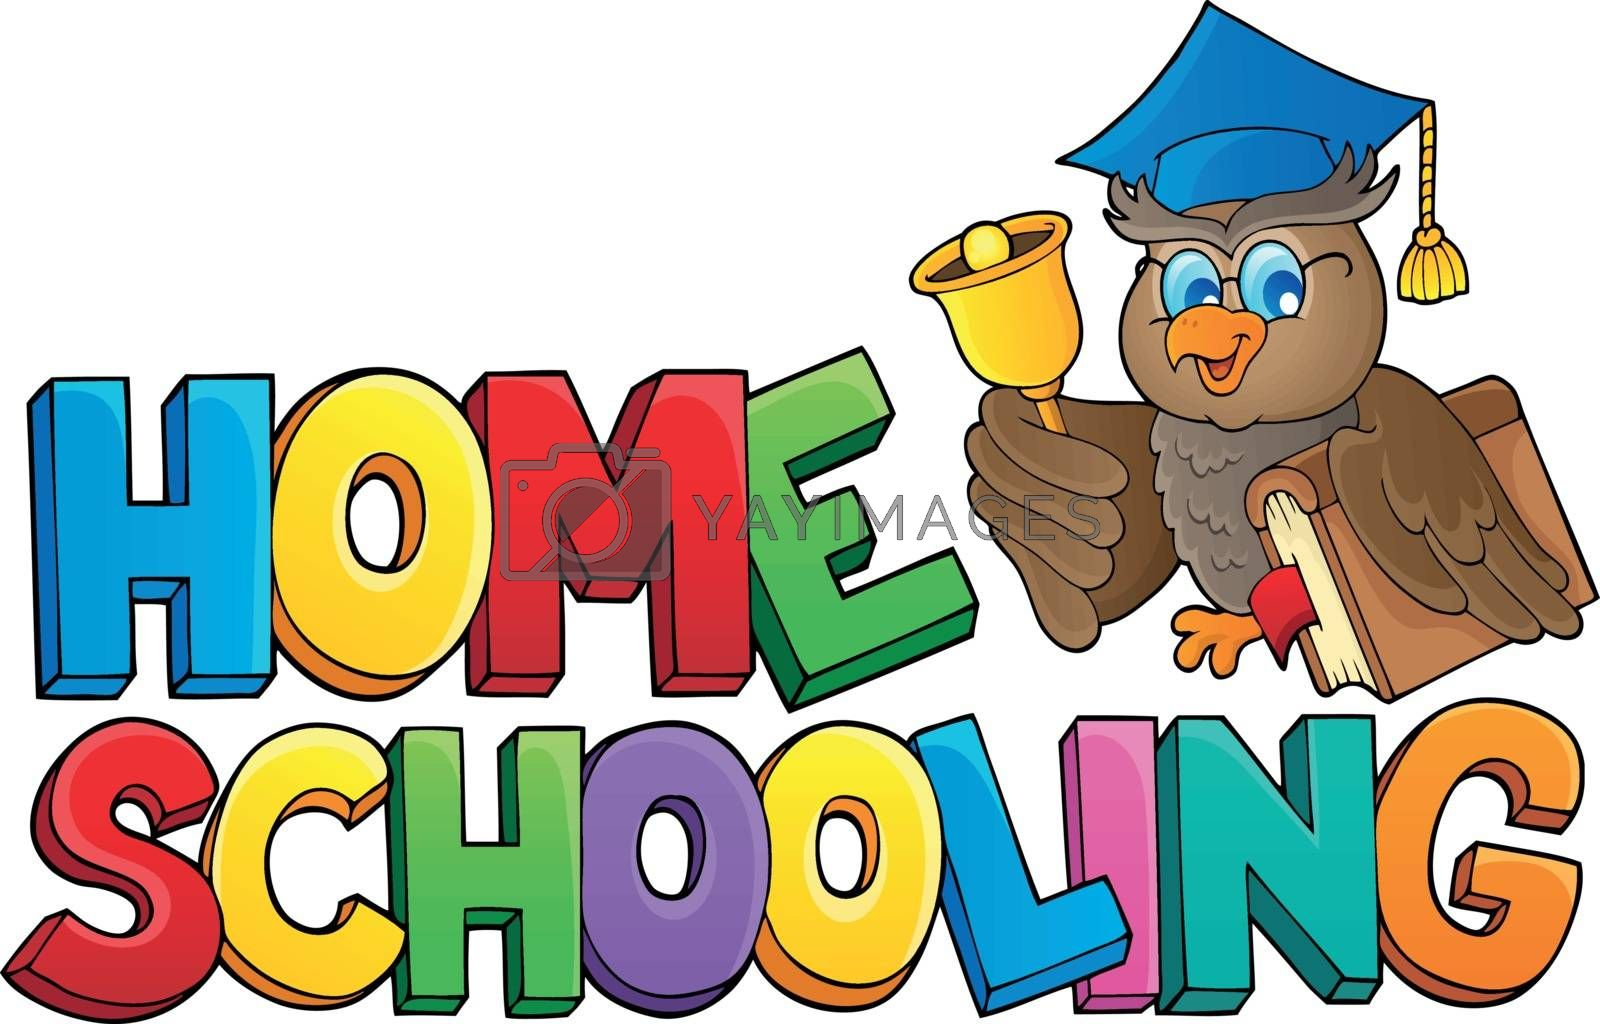 Home schooling theme sign 2 - eps10 vector illustration.